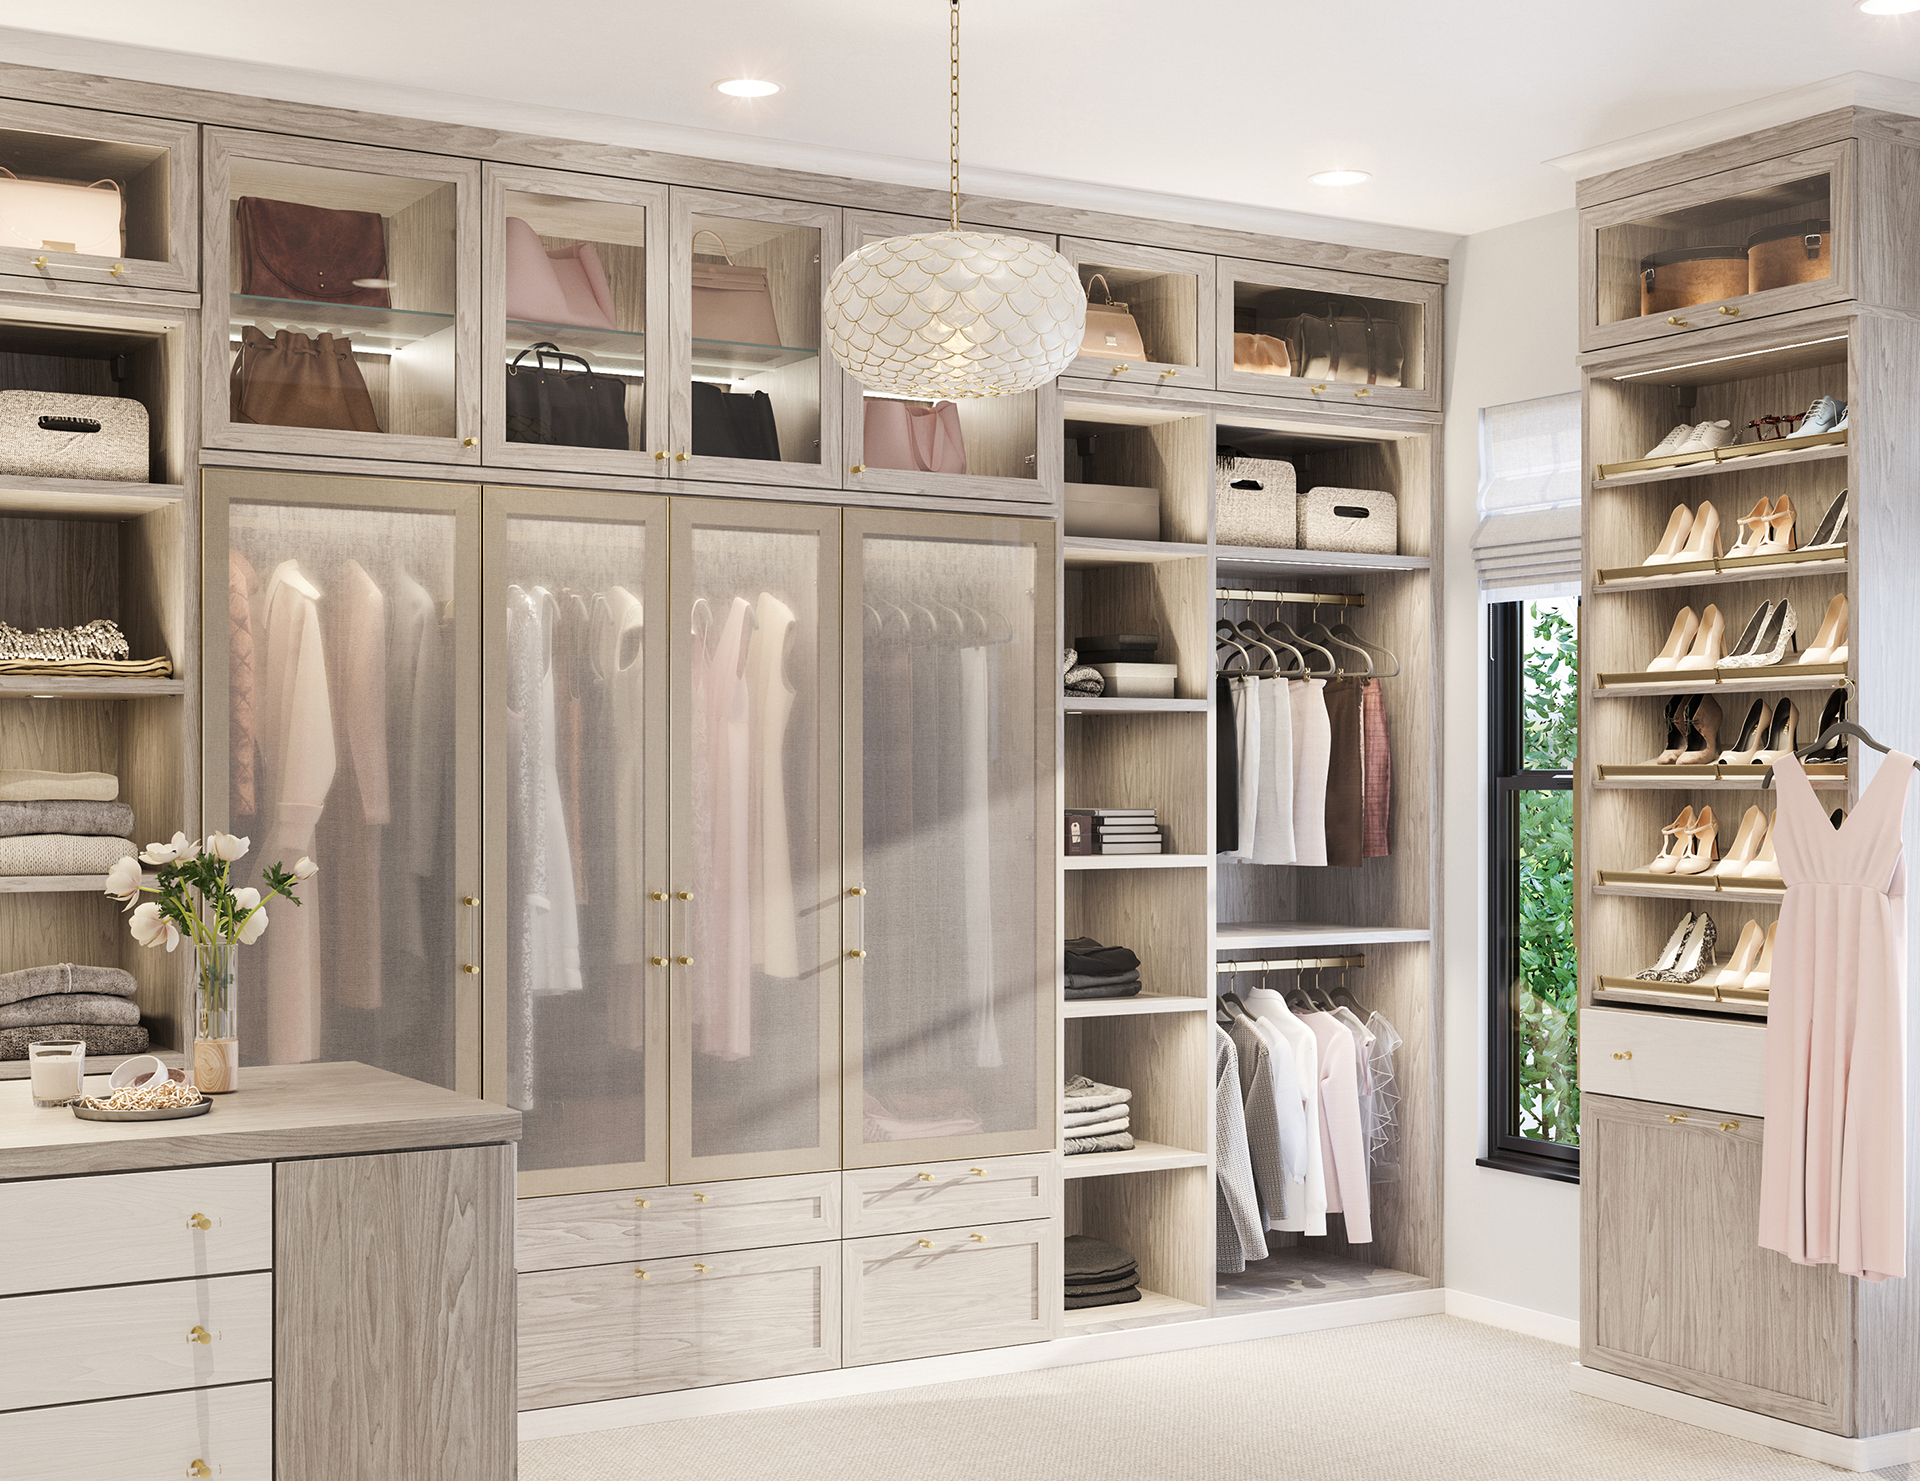 Large Master Closet Ideas Light walk-in closet with pull-out rack closet accessories by California  Closets